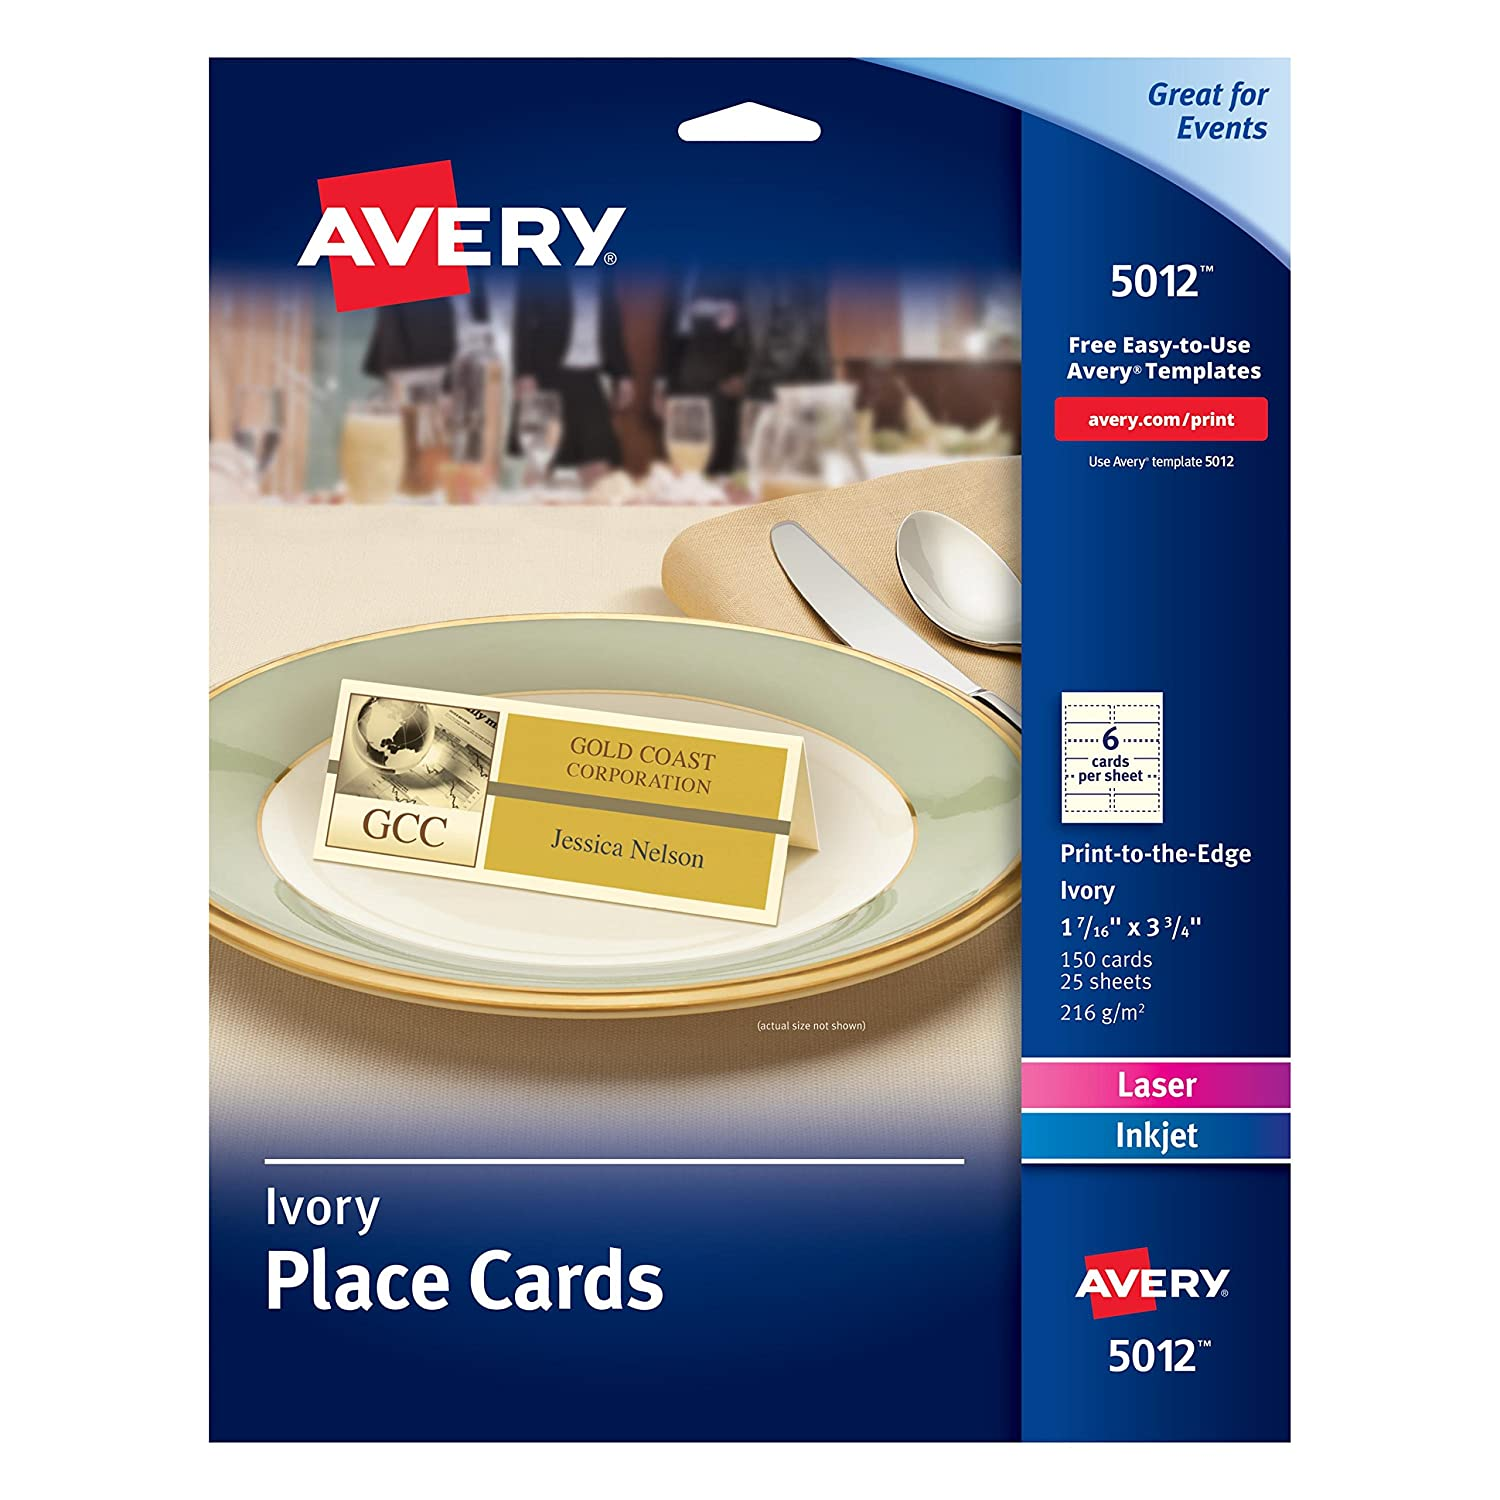 Amazoncom Avery Ivory Place Cards LaserInkjet Printers - Avery place cards template